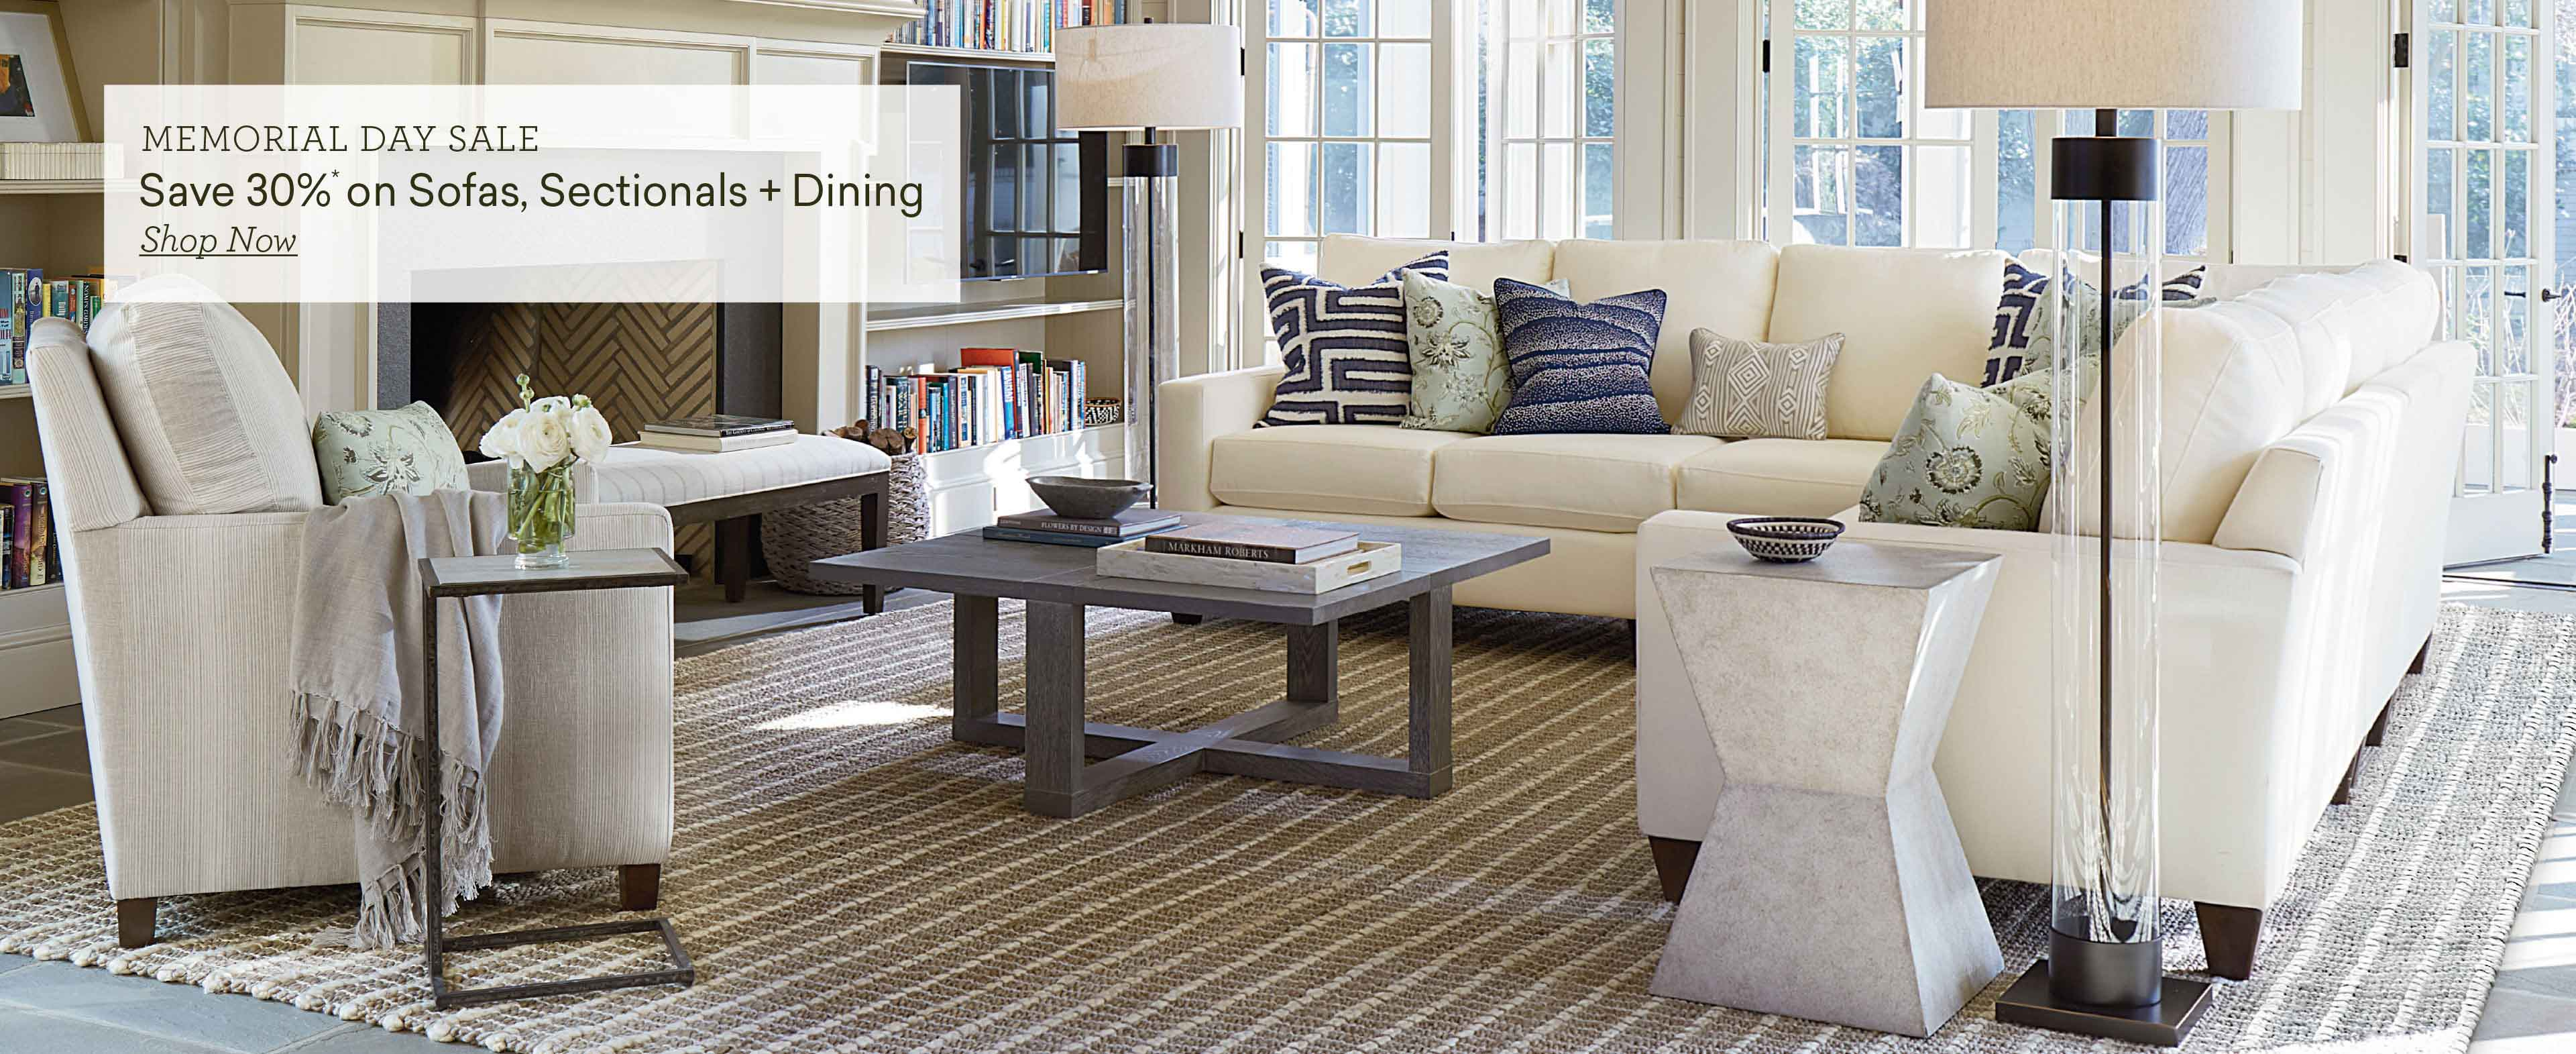 memorial day sale save 30% on sofas sectional and dining slide 2 Desktop